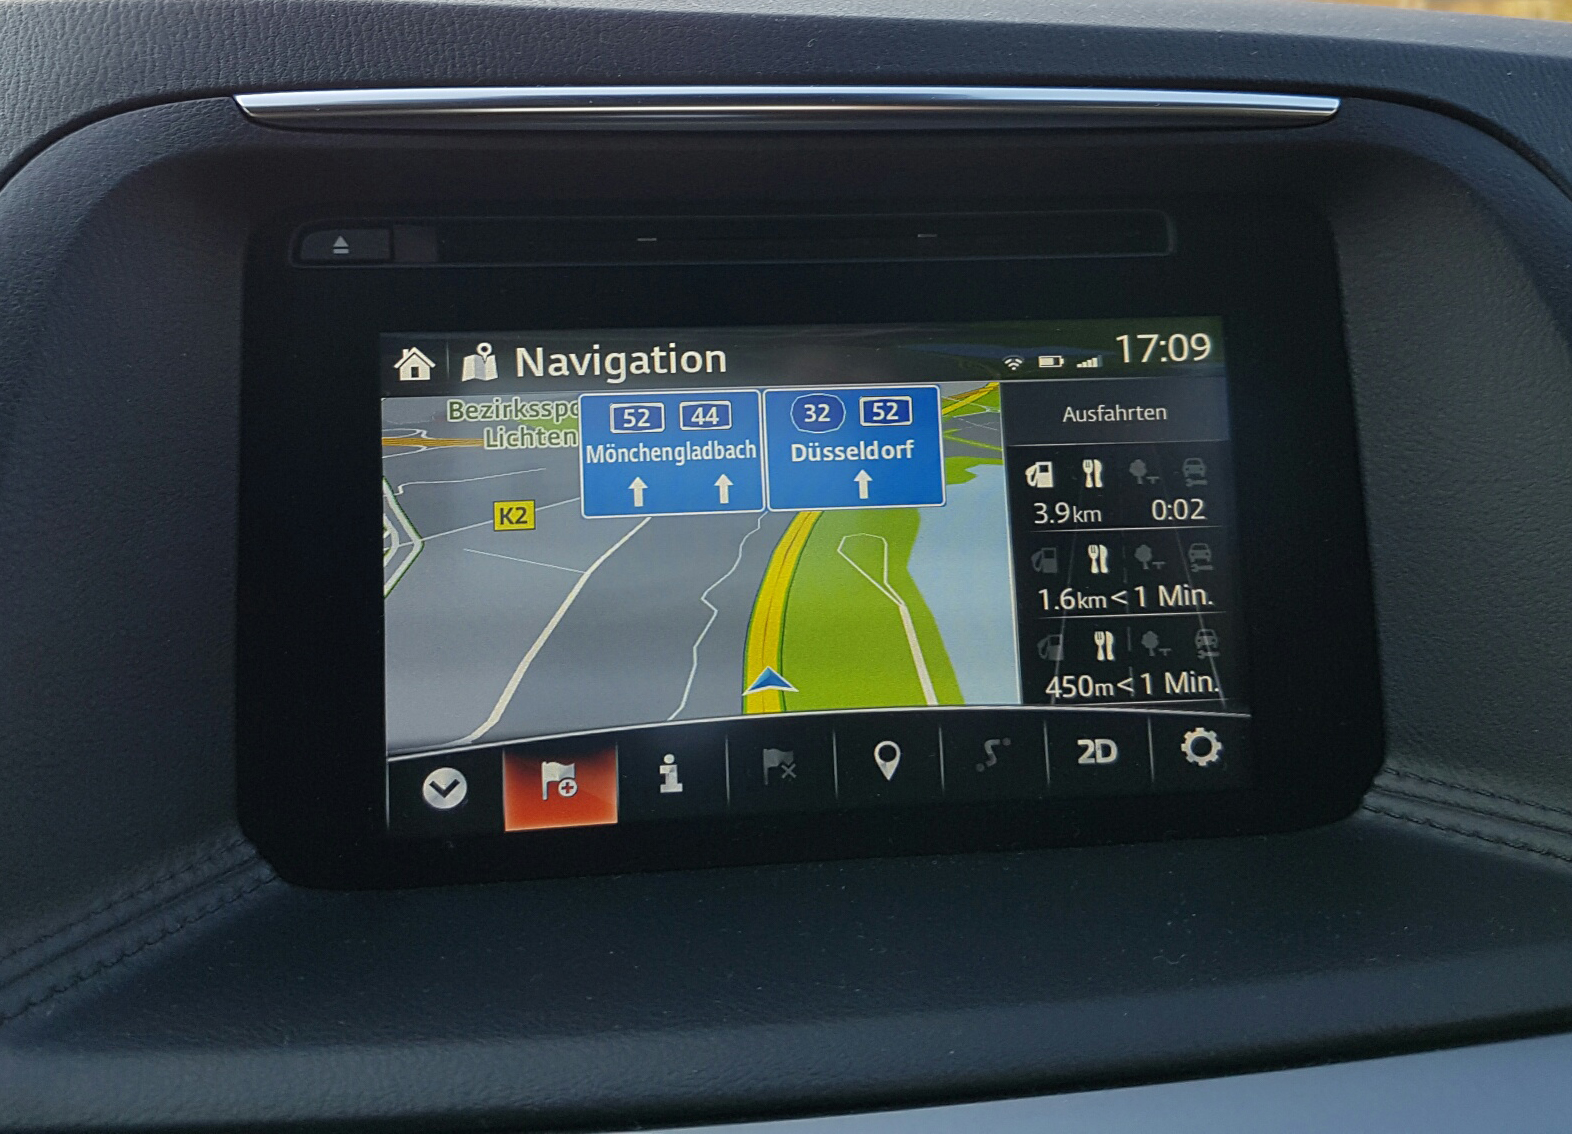 mazda cx-5 als connected car - android, iphone, kommunikation